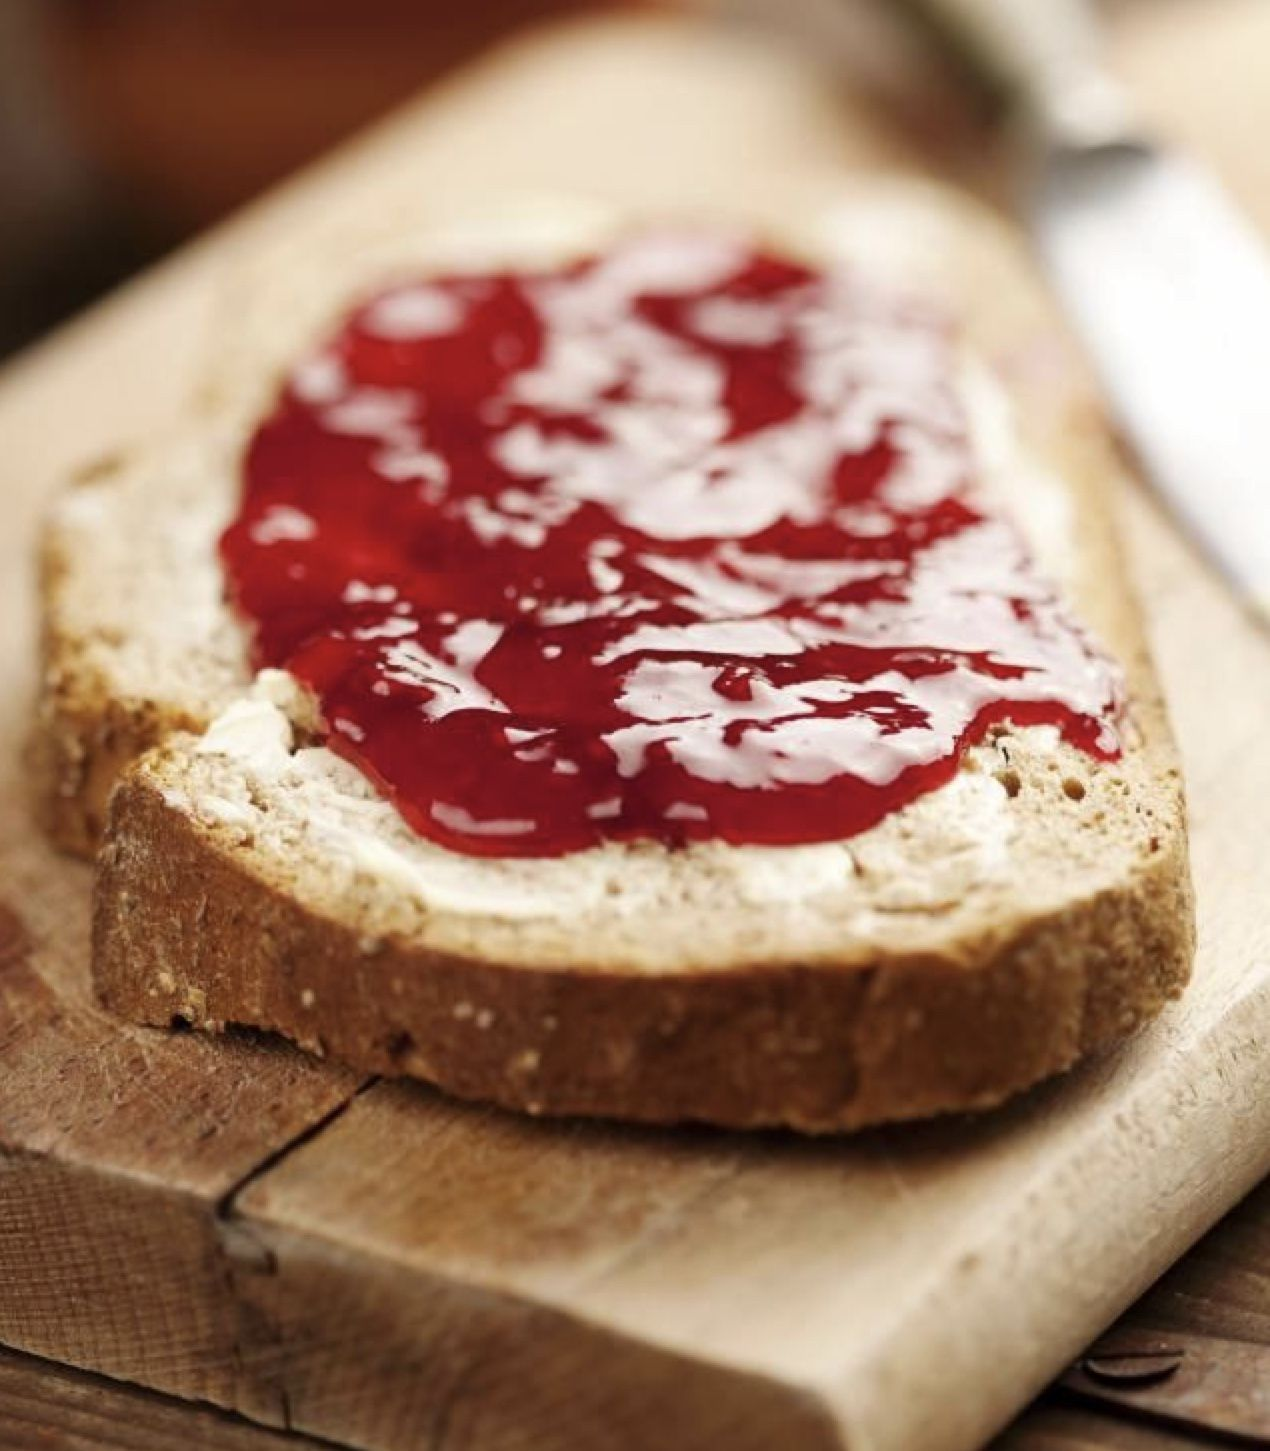 Pin By Chelle Belle On Here S A Toast To The Jam In Your